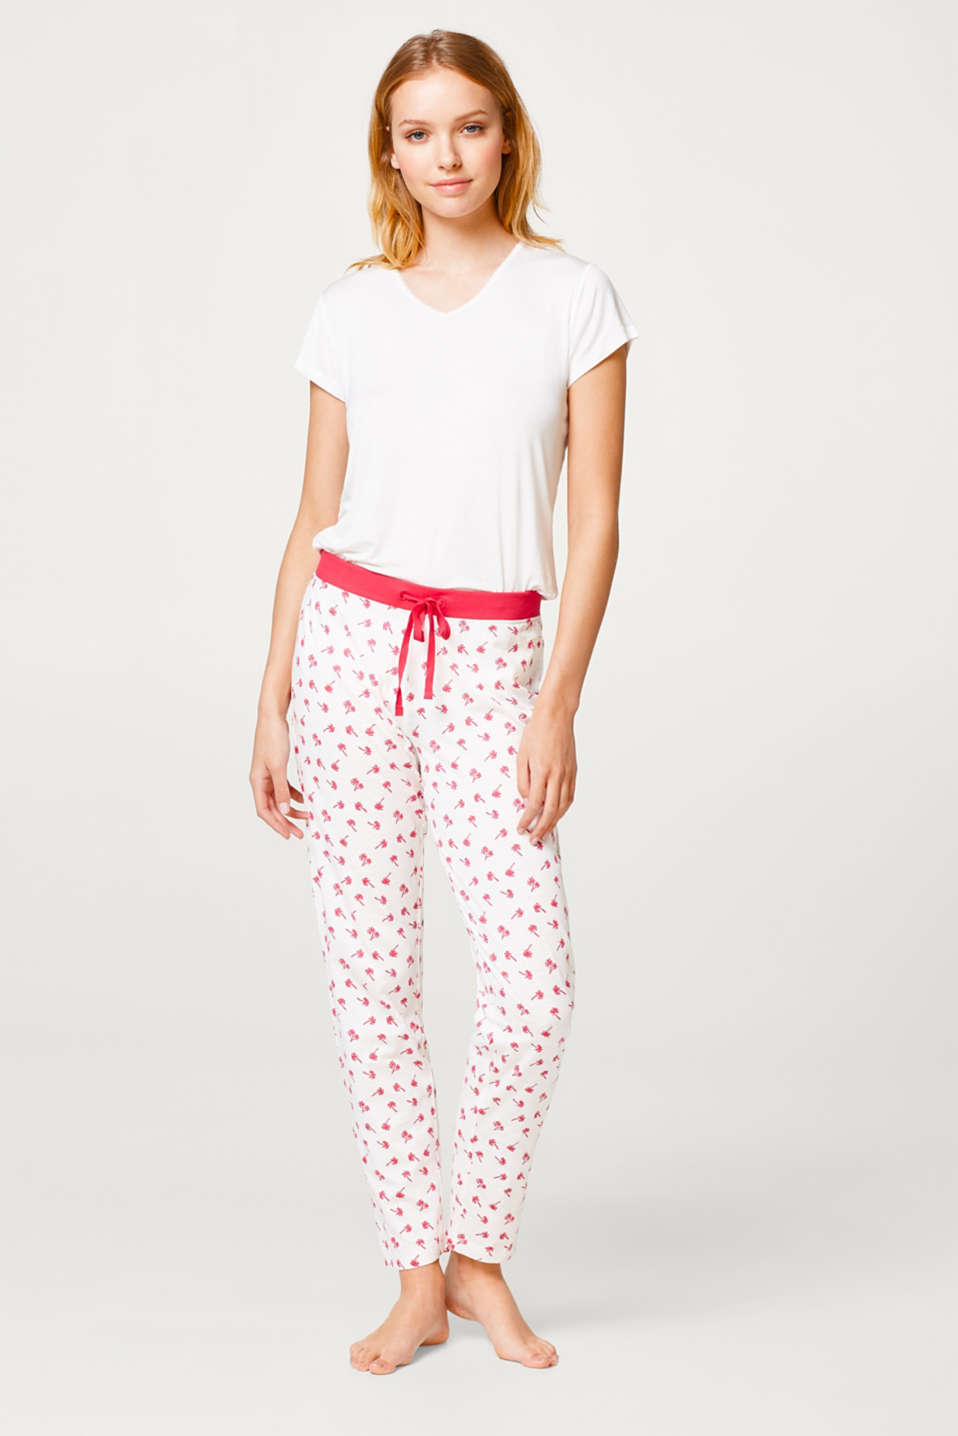 Esprit - Floaty slub trousers with a print, 100% cotton